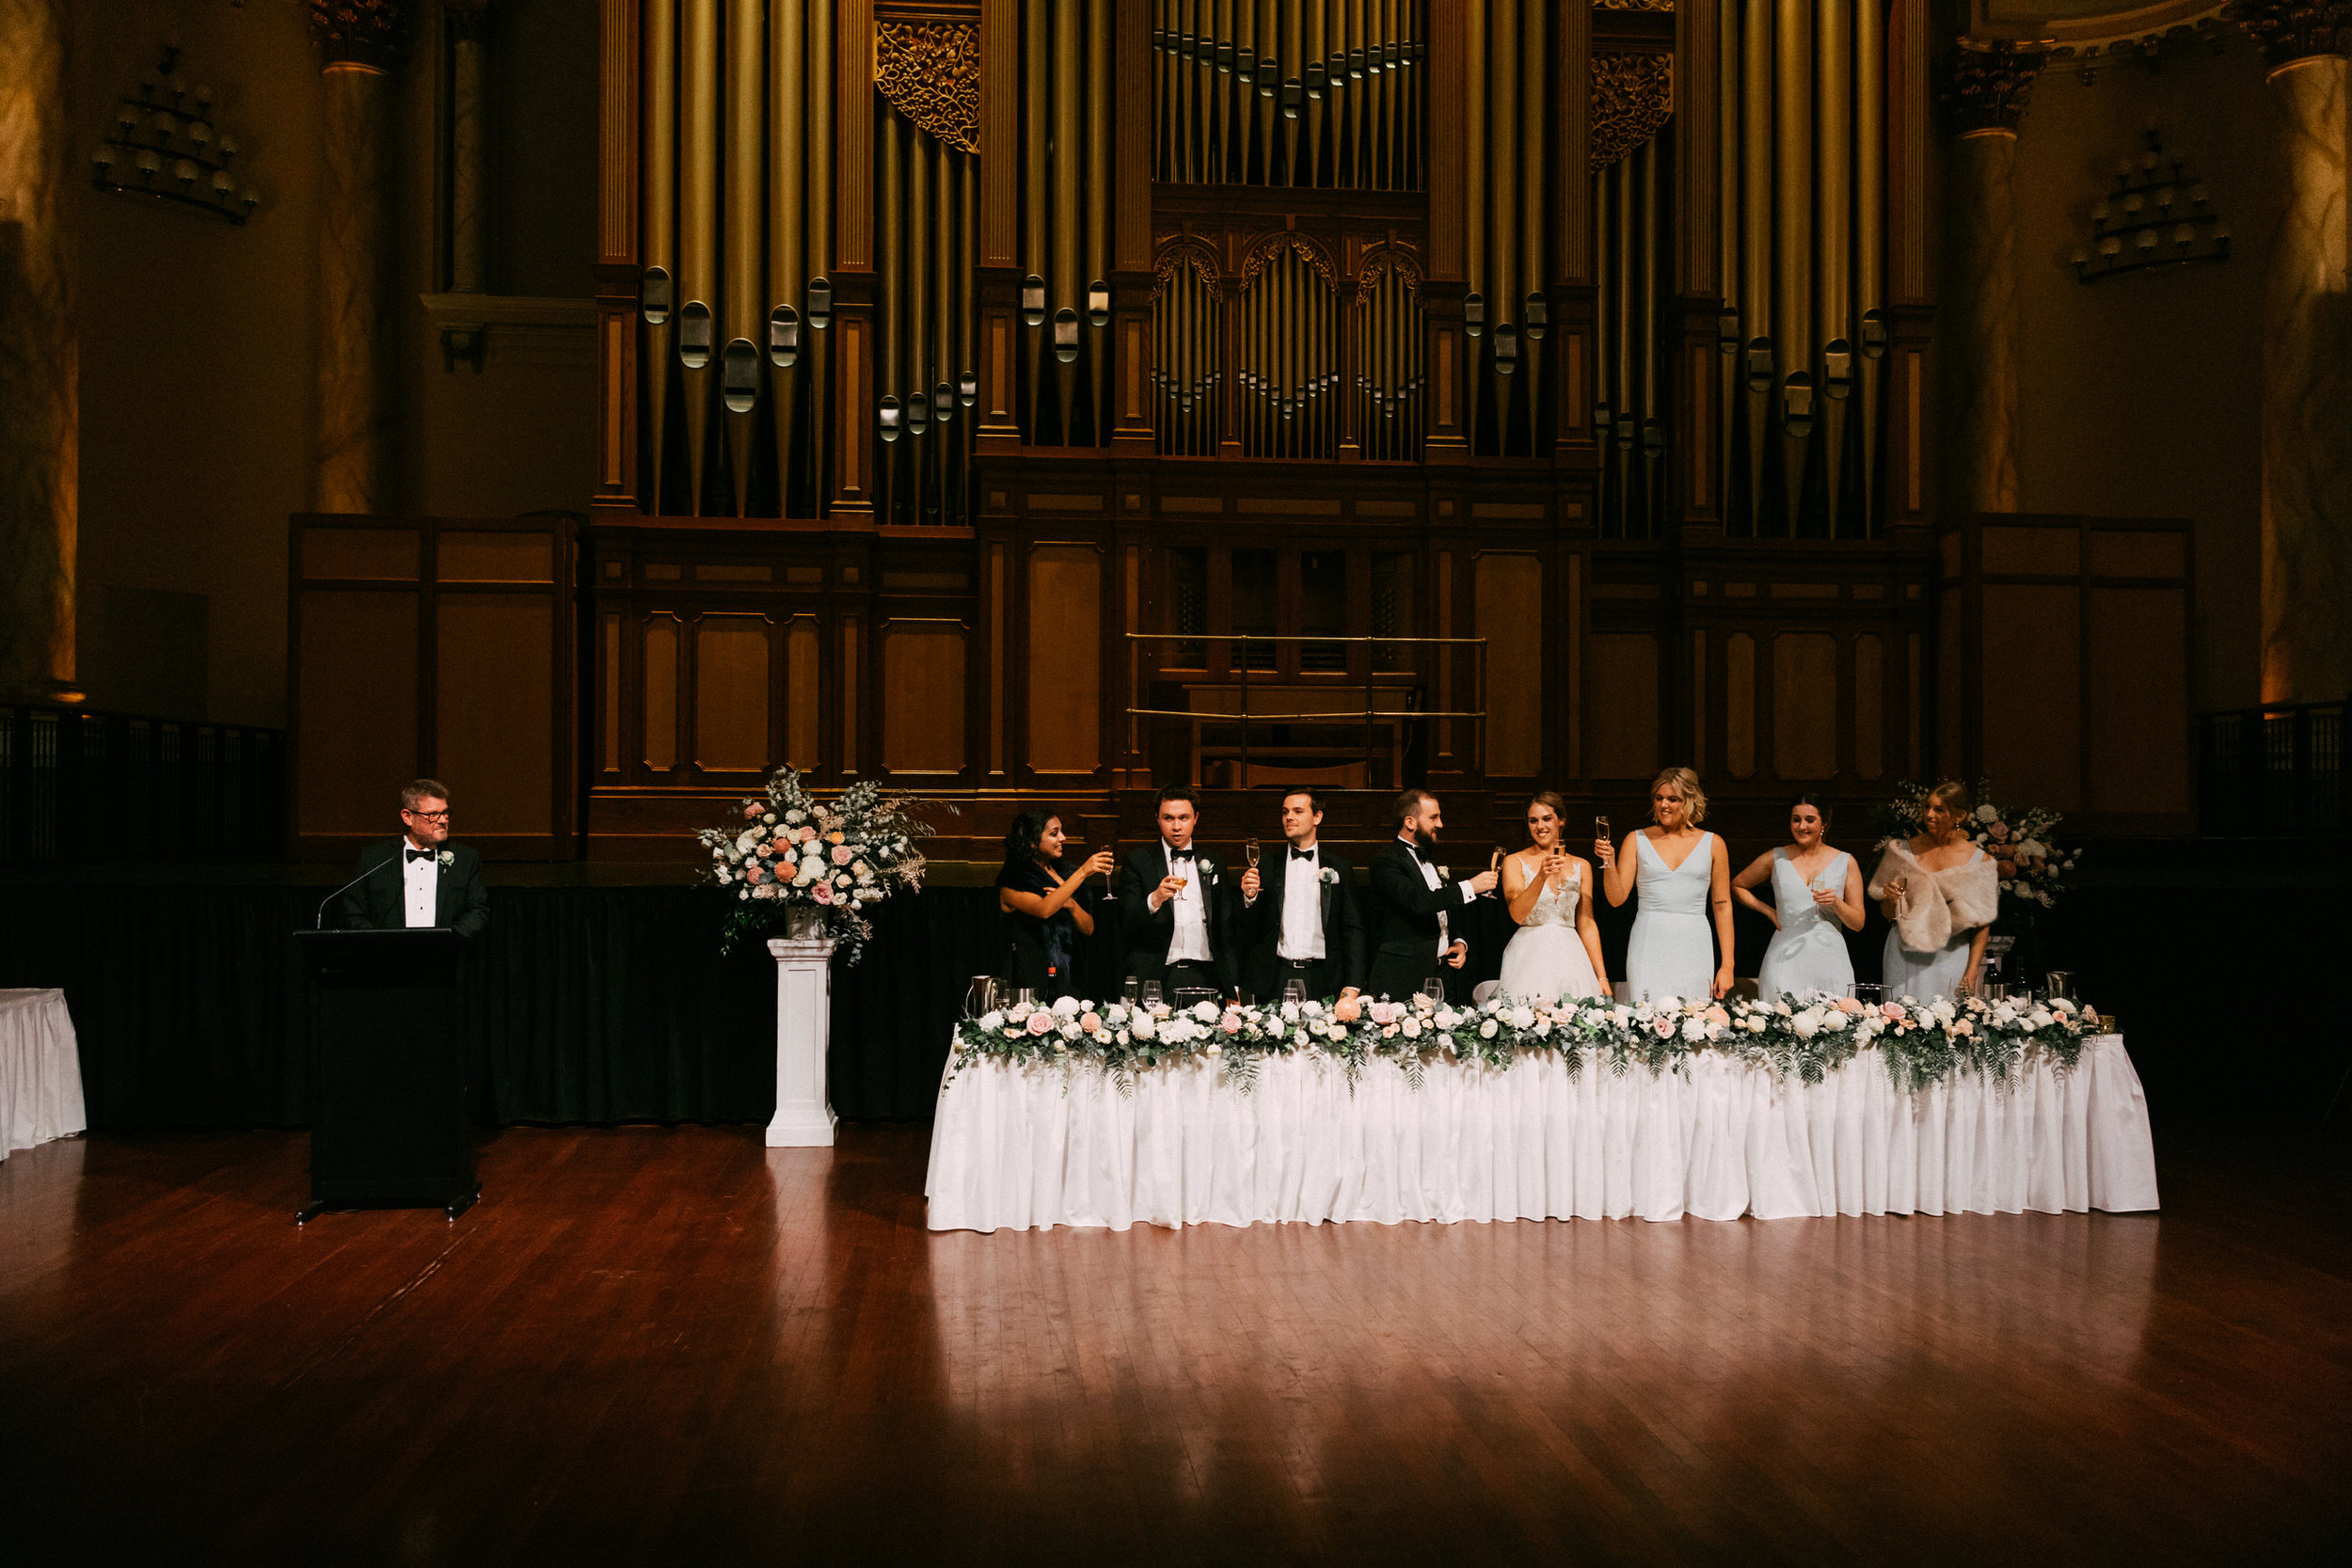 Adelaide Wedding 2019 167.jpg